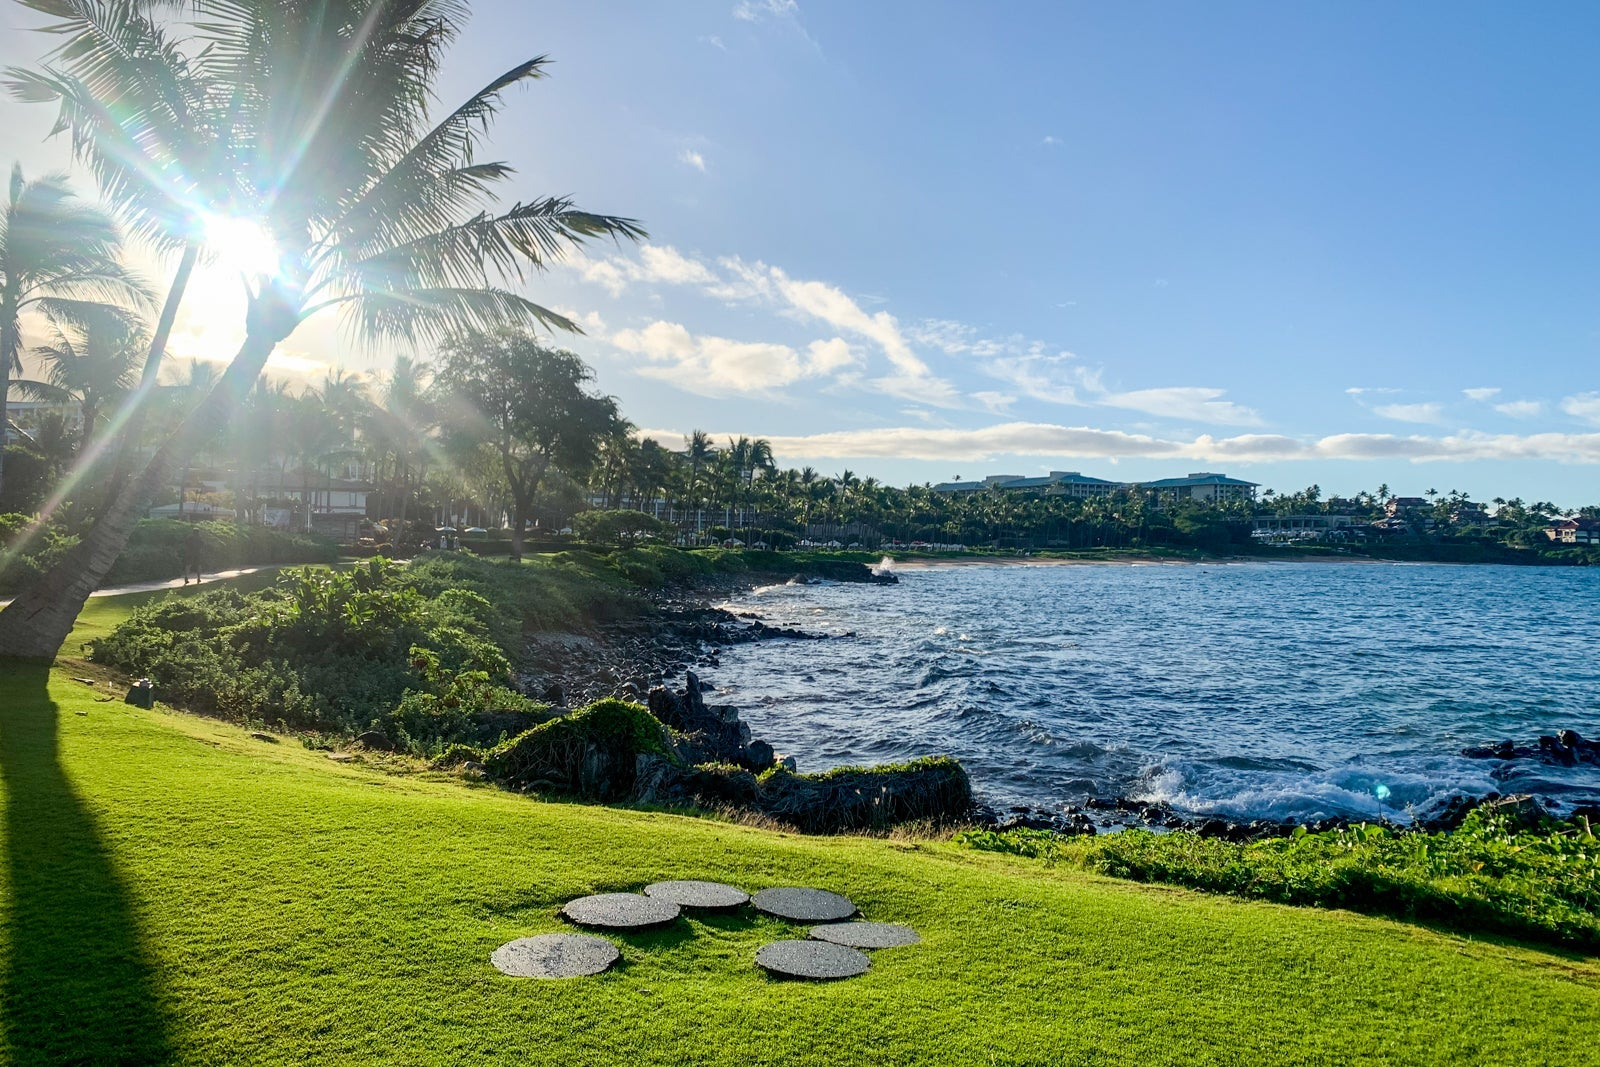 Get away from the crowds: 6 incredible Hawaii vacation home rentals - The Points Guy